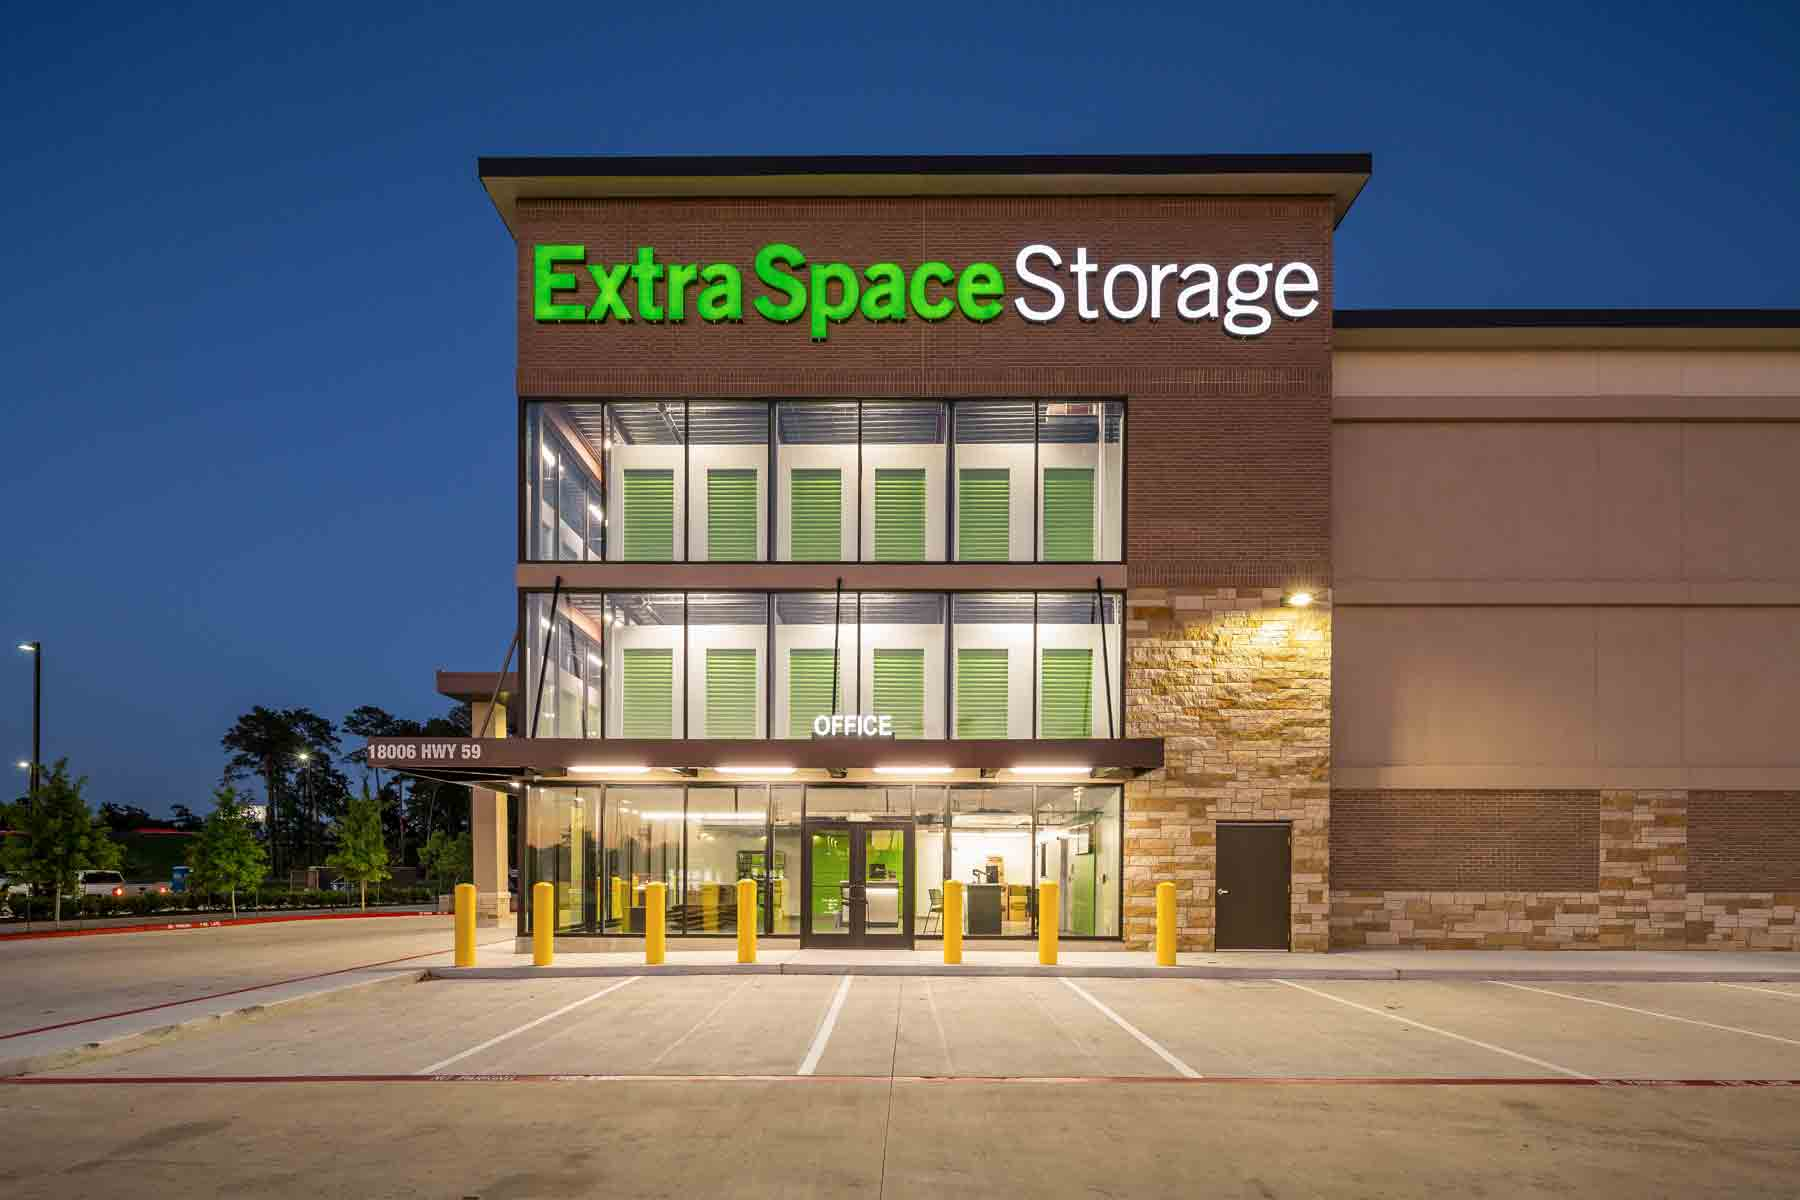 Extra Space Storage Using Self Storage Signs Channel